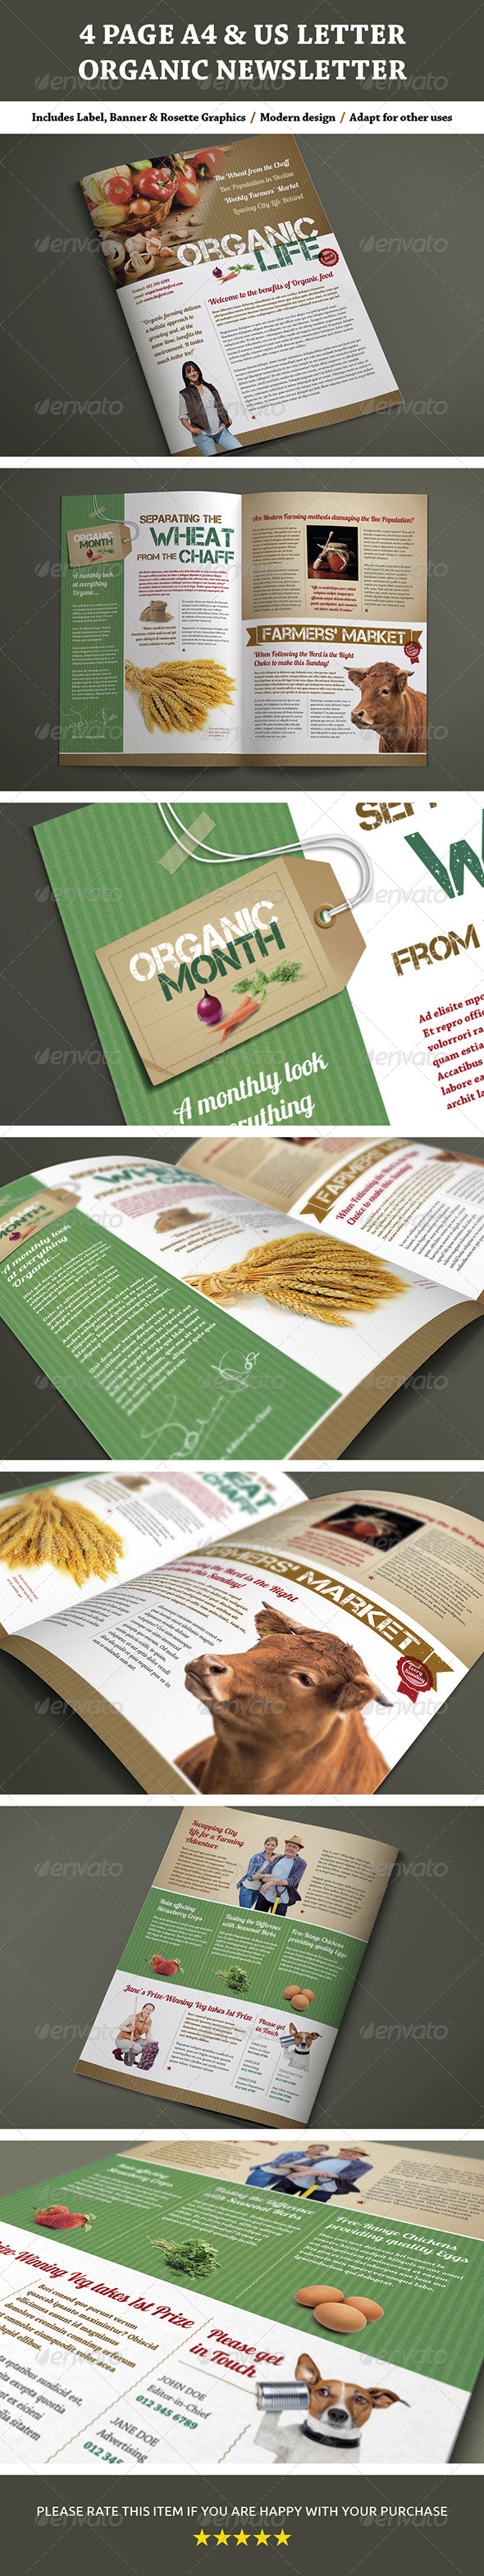 GraphicRiver 4 Page A4 and US Letter Organic Newsletter 7413416